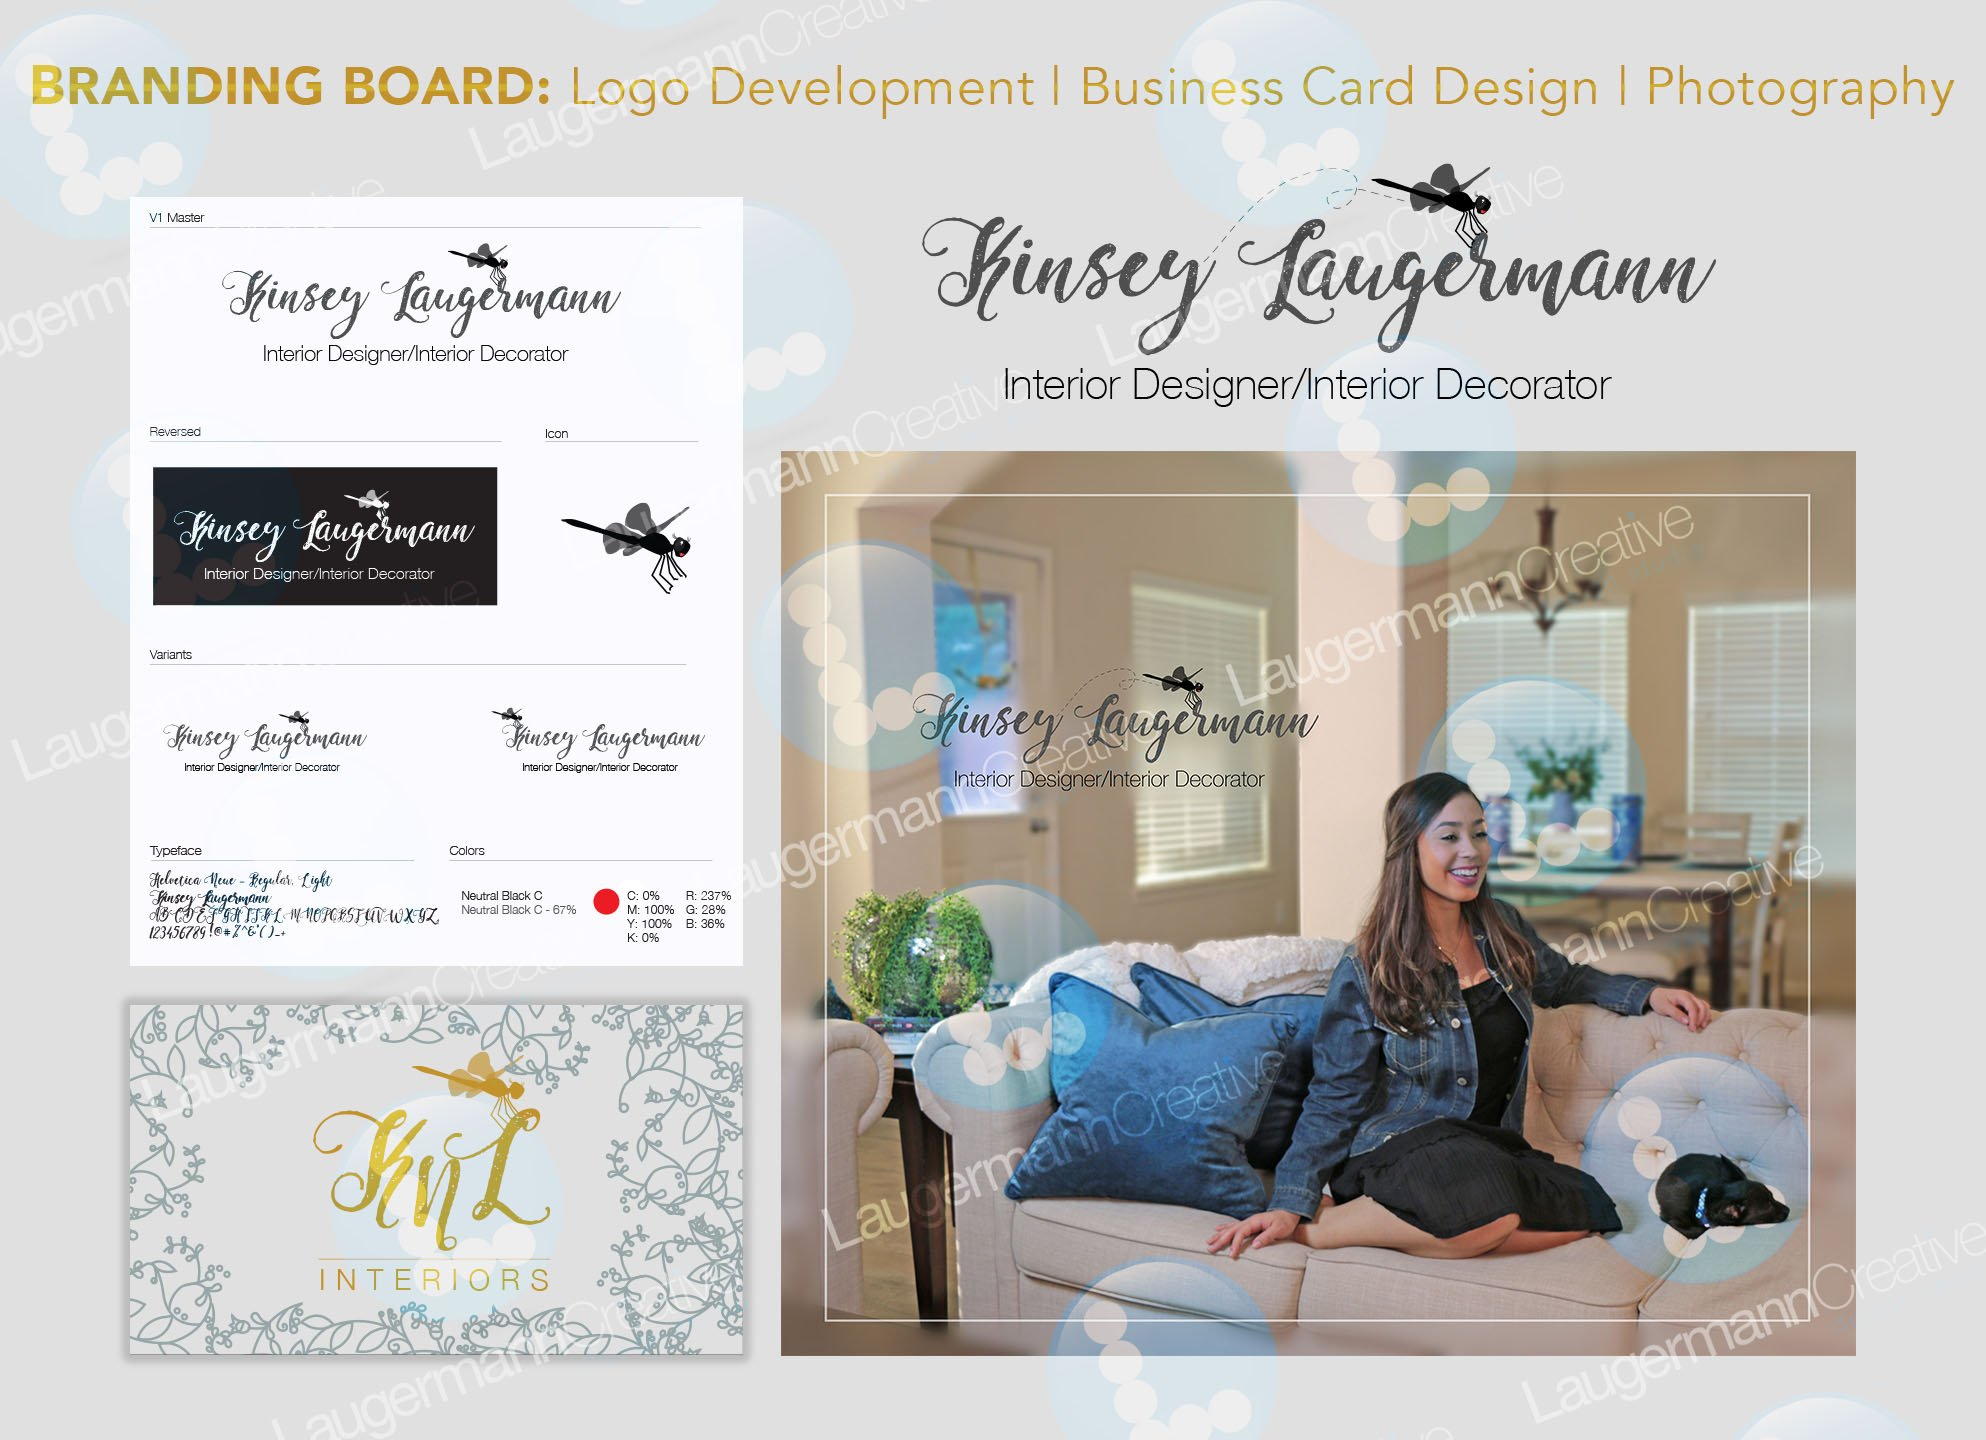 Branding Board: Logo, Photography, Business Card Design